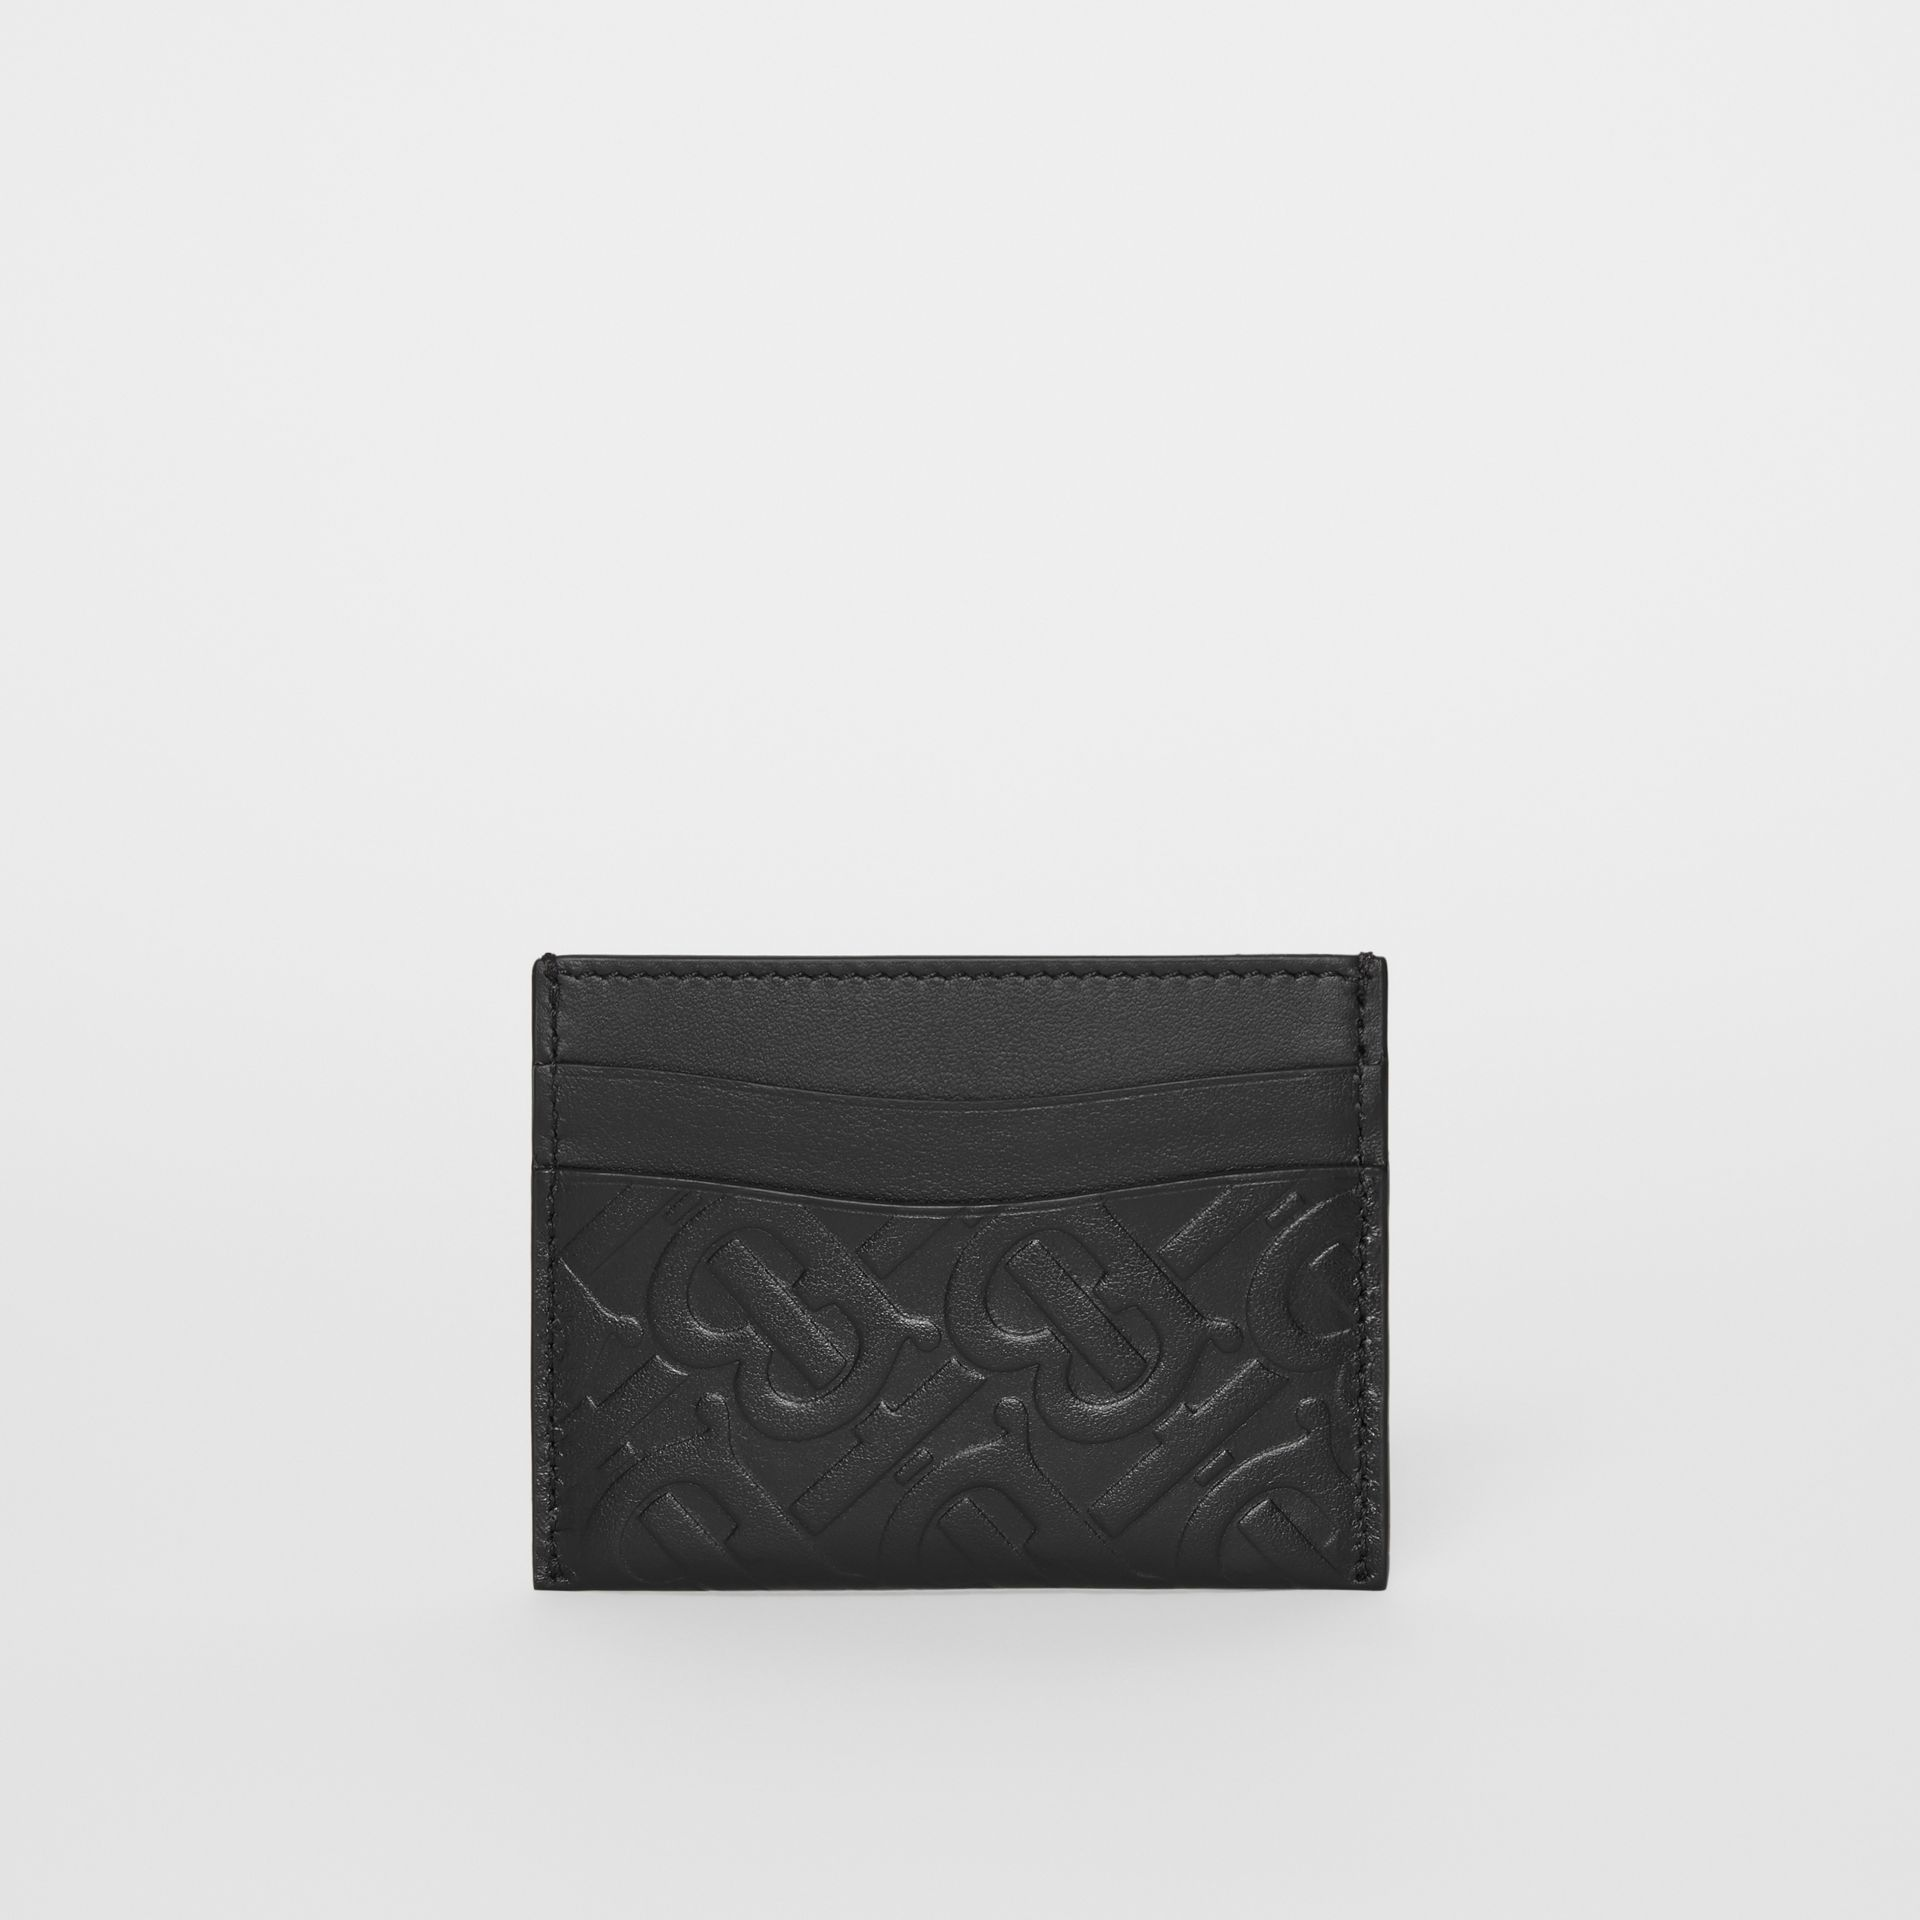 Monogram Leather Card Case in Black - Women | Burberry United Kingdom - gallery image 4